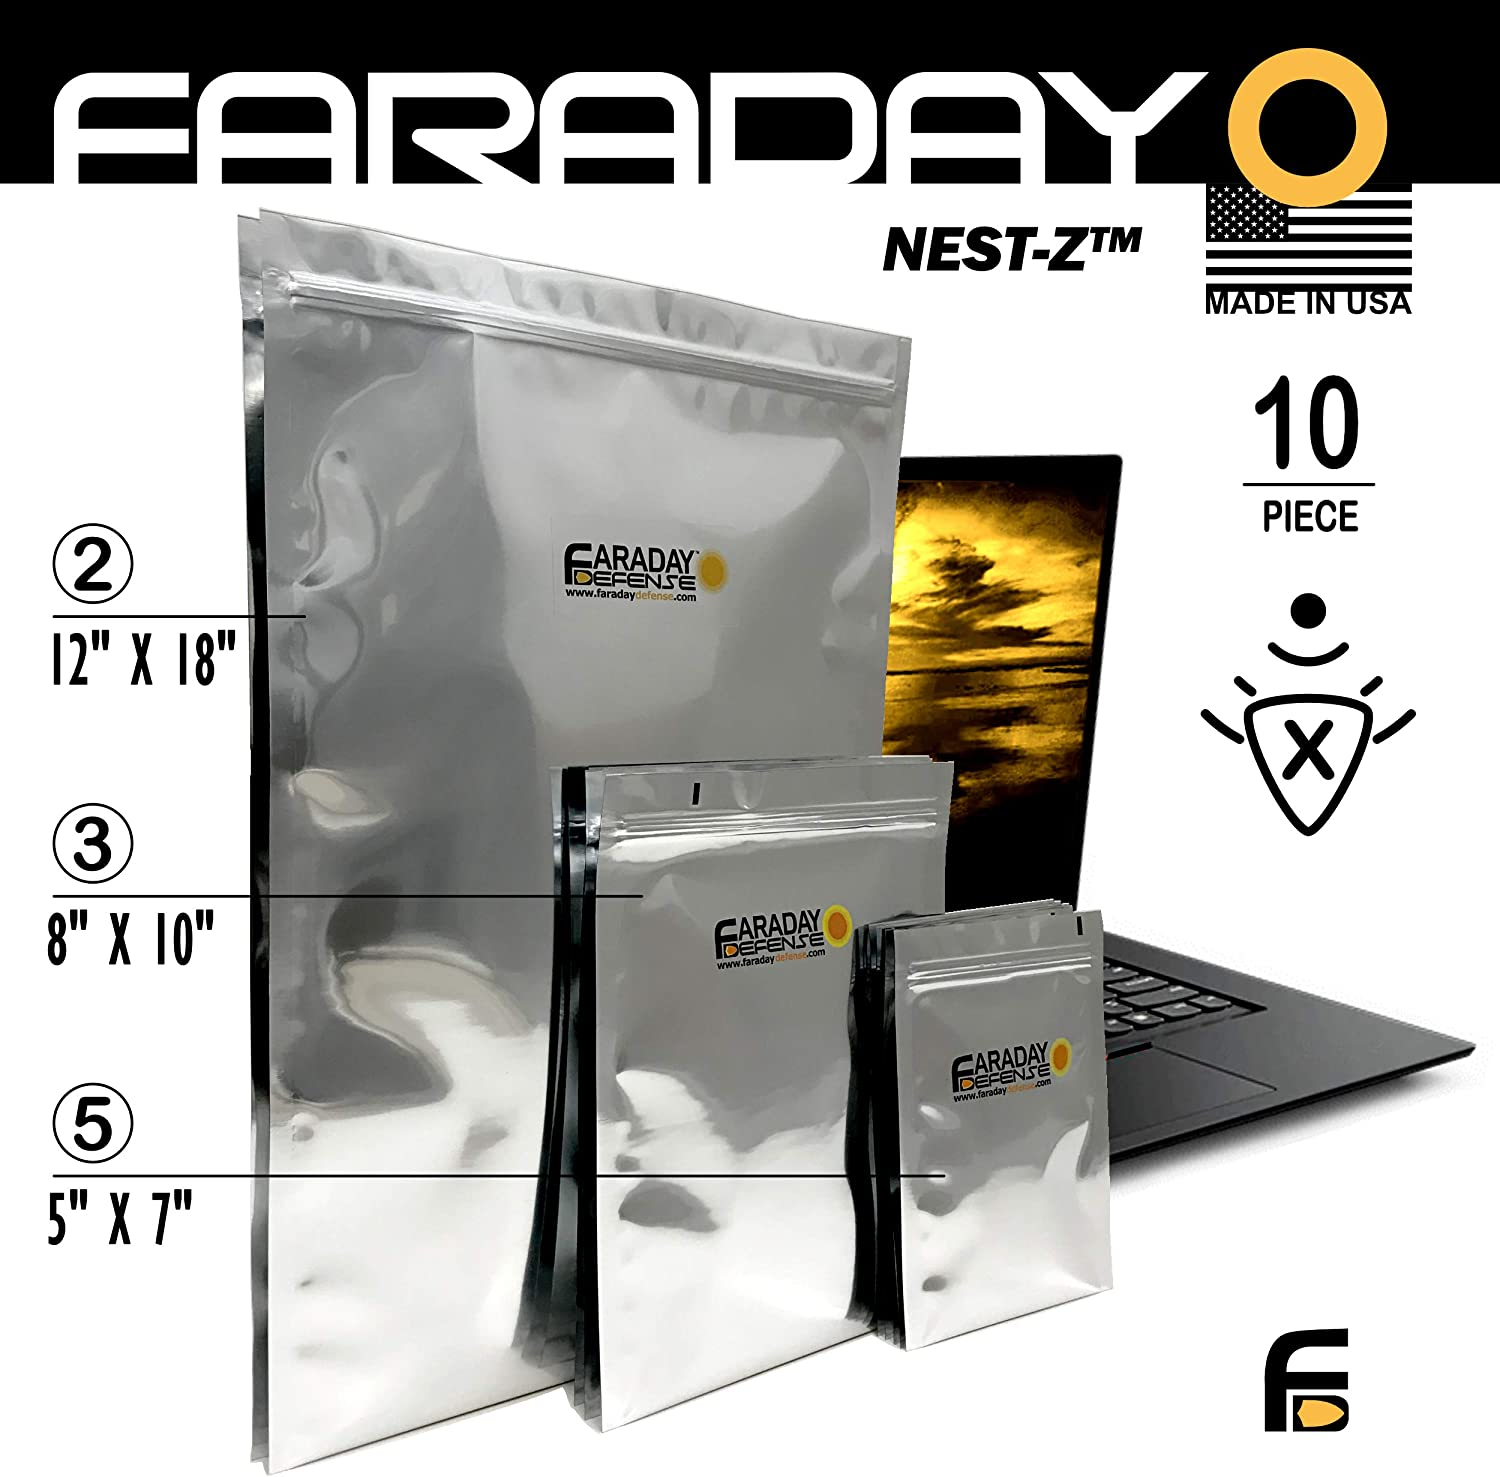 B00WLI5G7G Faraday Cage EMP Bags 10pc - Military Grade, Uber Thick - Solar Flare Bags, 2-Metal Layer, Fully-SPECCED, Heavy Duty Electro-Shielding Kit X-Large Laptop/Notebook 81htVAfqy1L